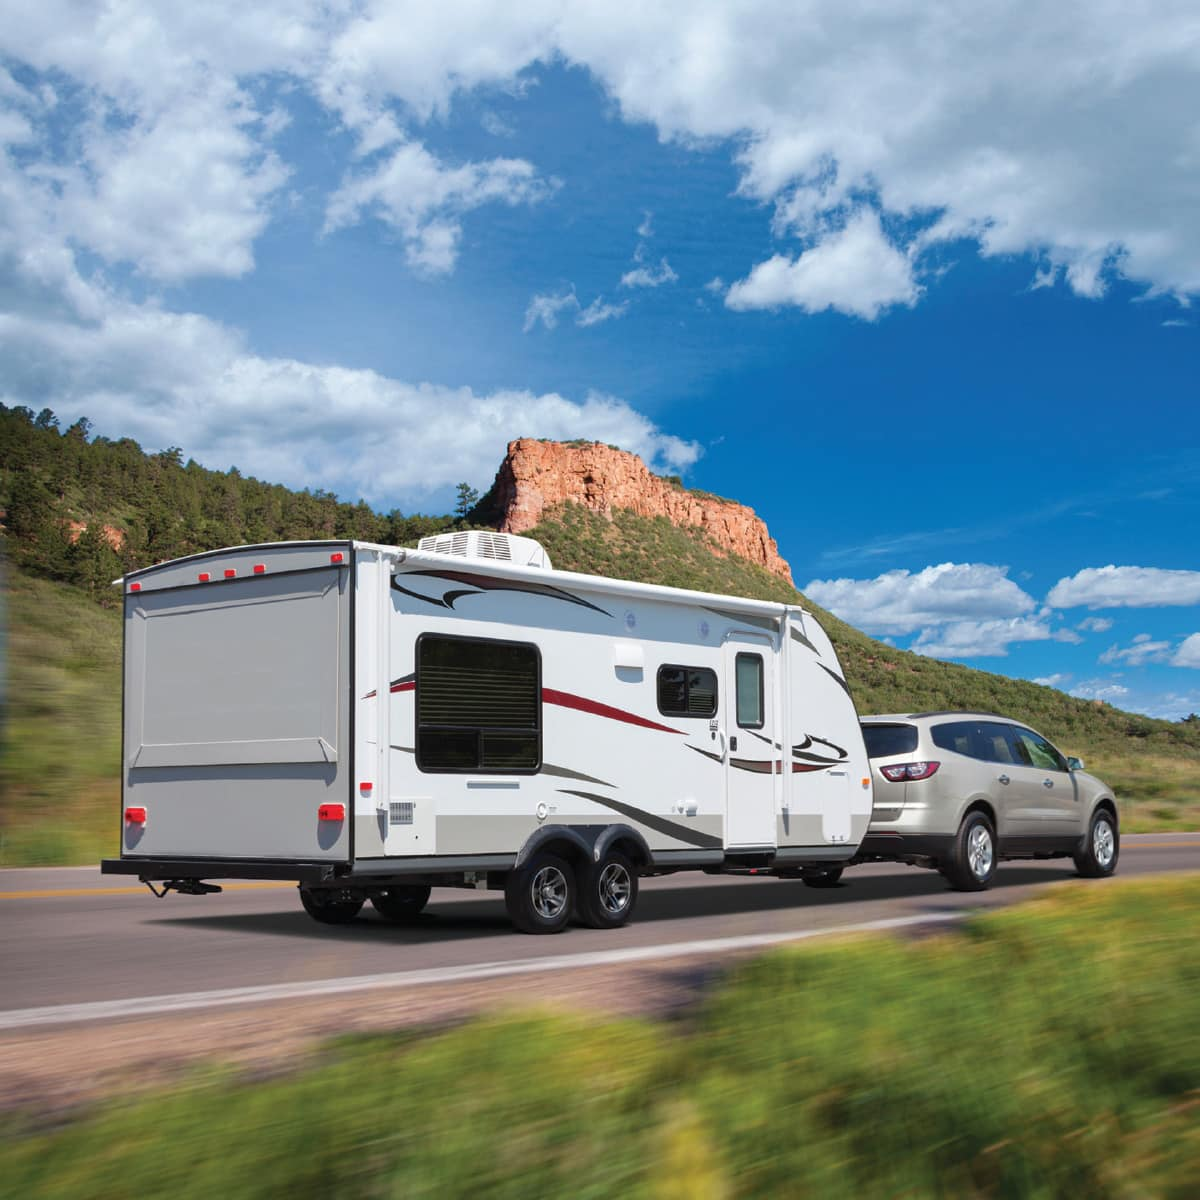 How To Empty Your Rv Holding Tank Camping World